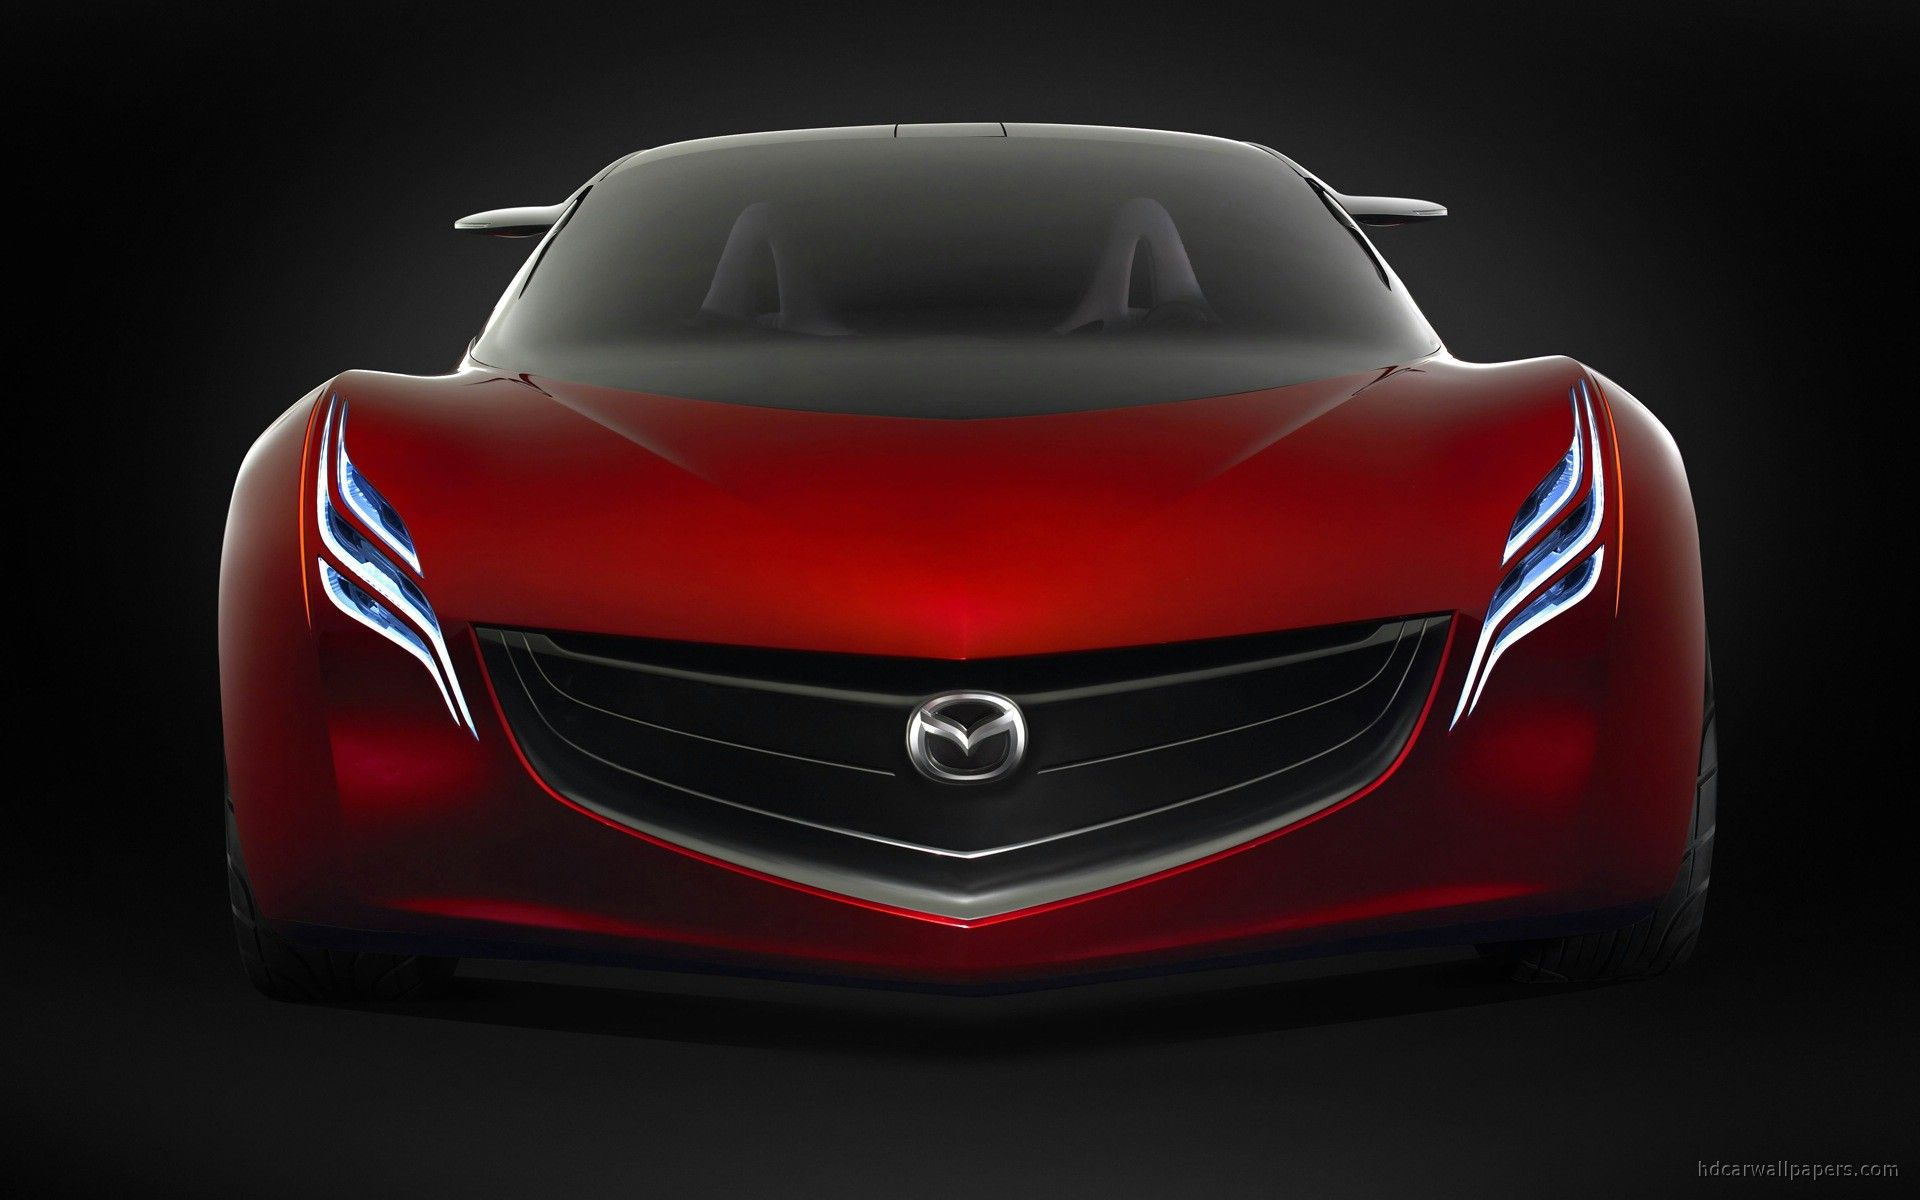 Undefined mazda logo wallpaper 38 wallpapers adorable mazda ryuga concept widescreen exotic car wallpapers of 52 dieselstation voltagebd Choice Image